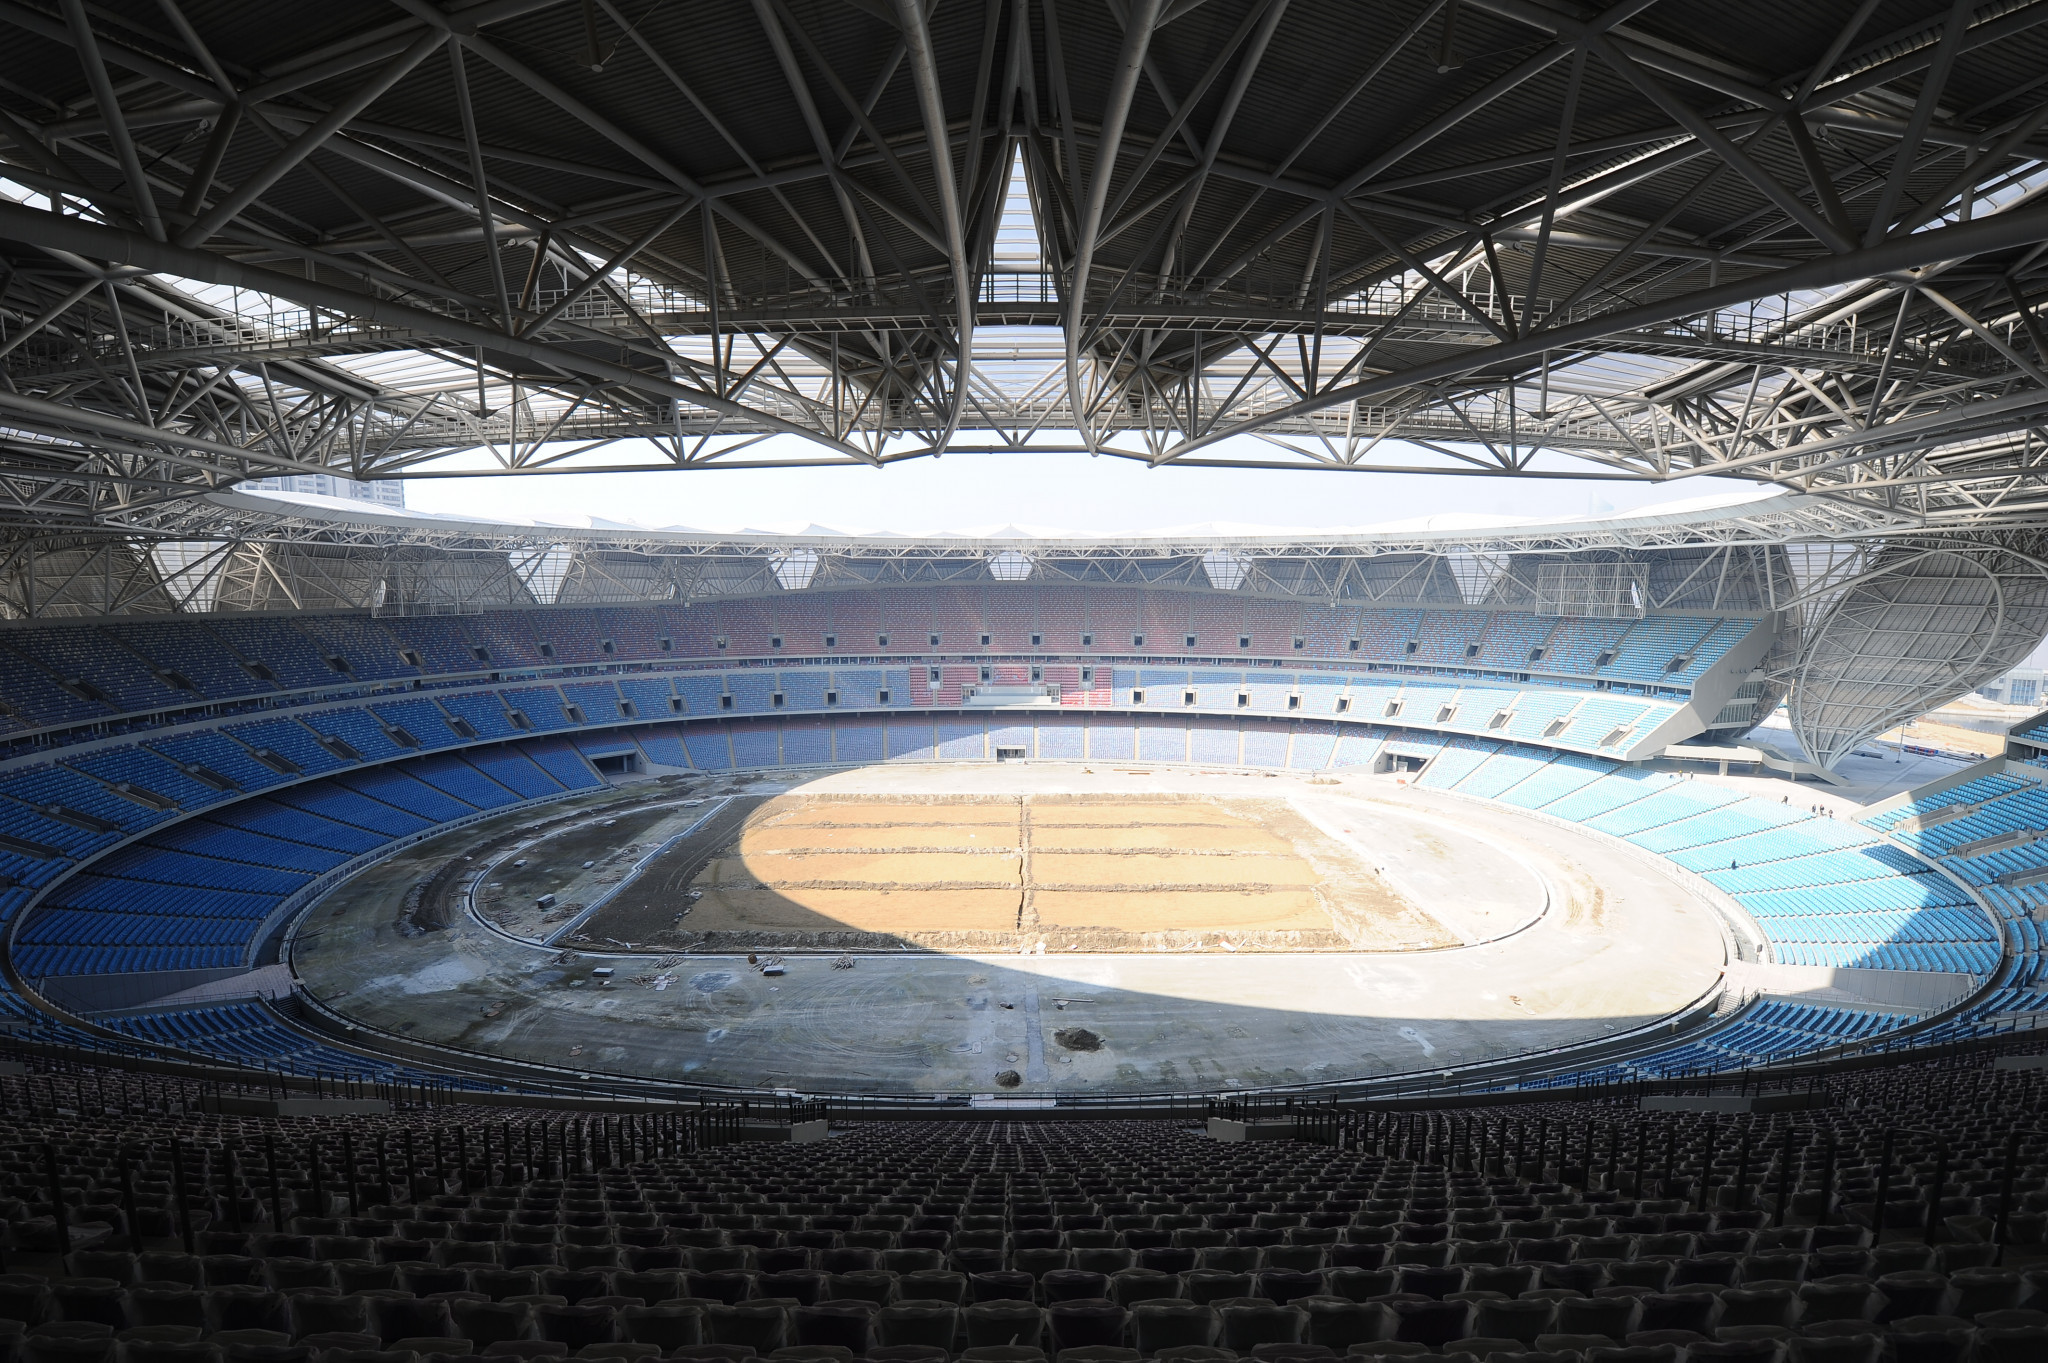 Main stadium and aquatics centre for Hangzhou 2022 given final approval